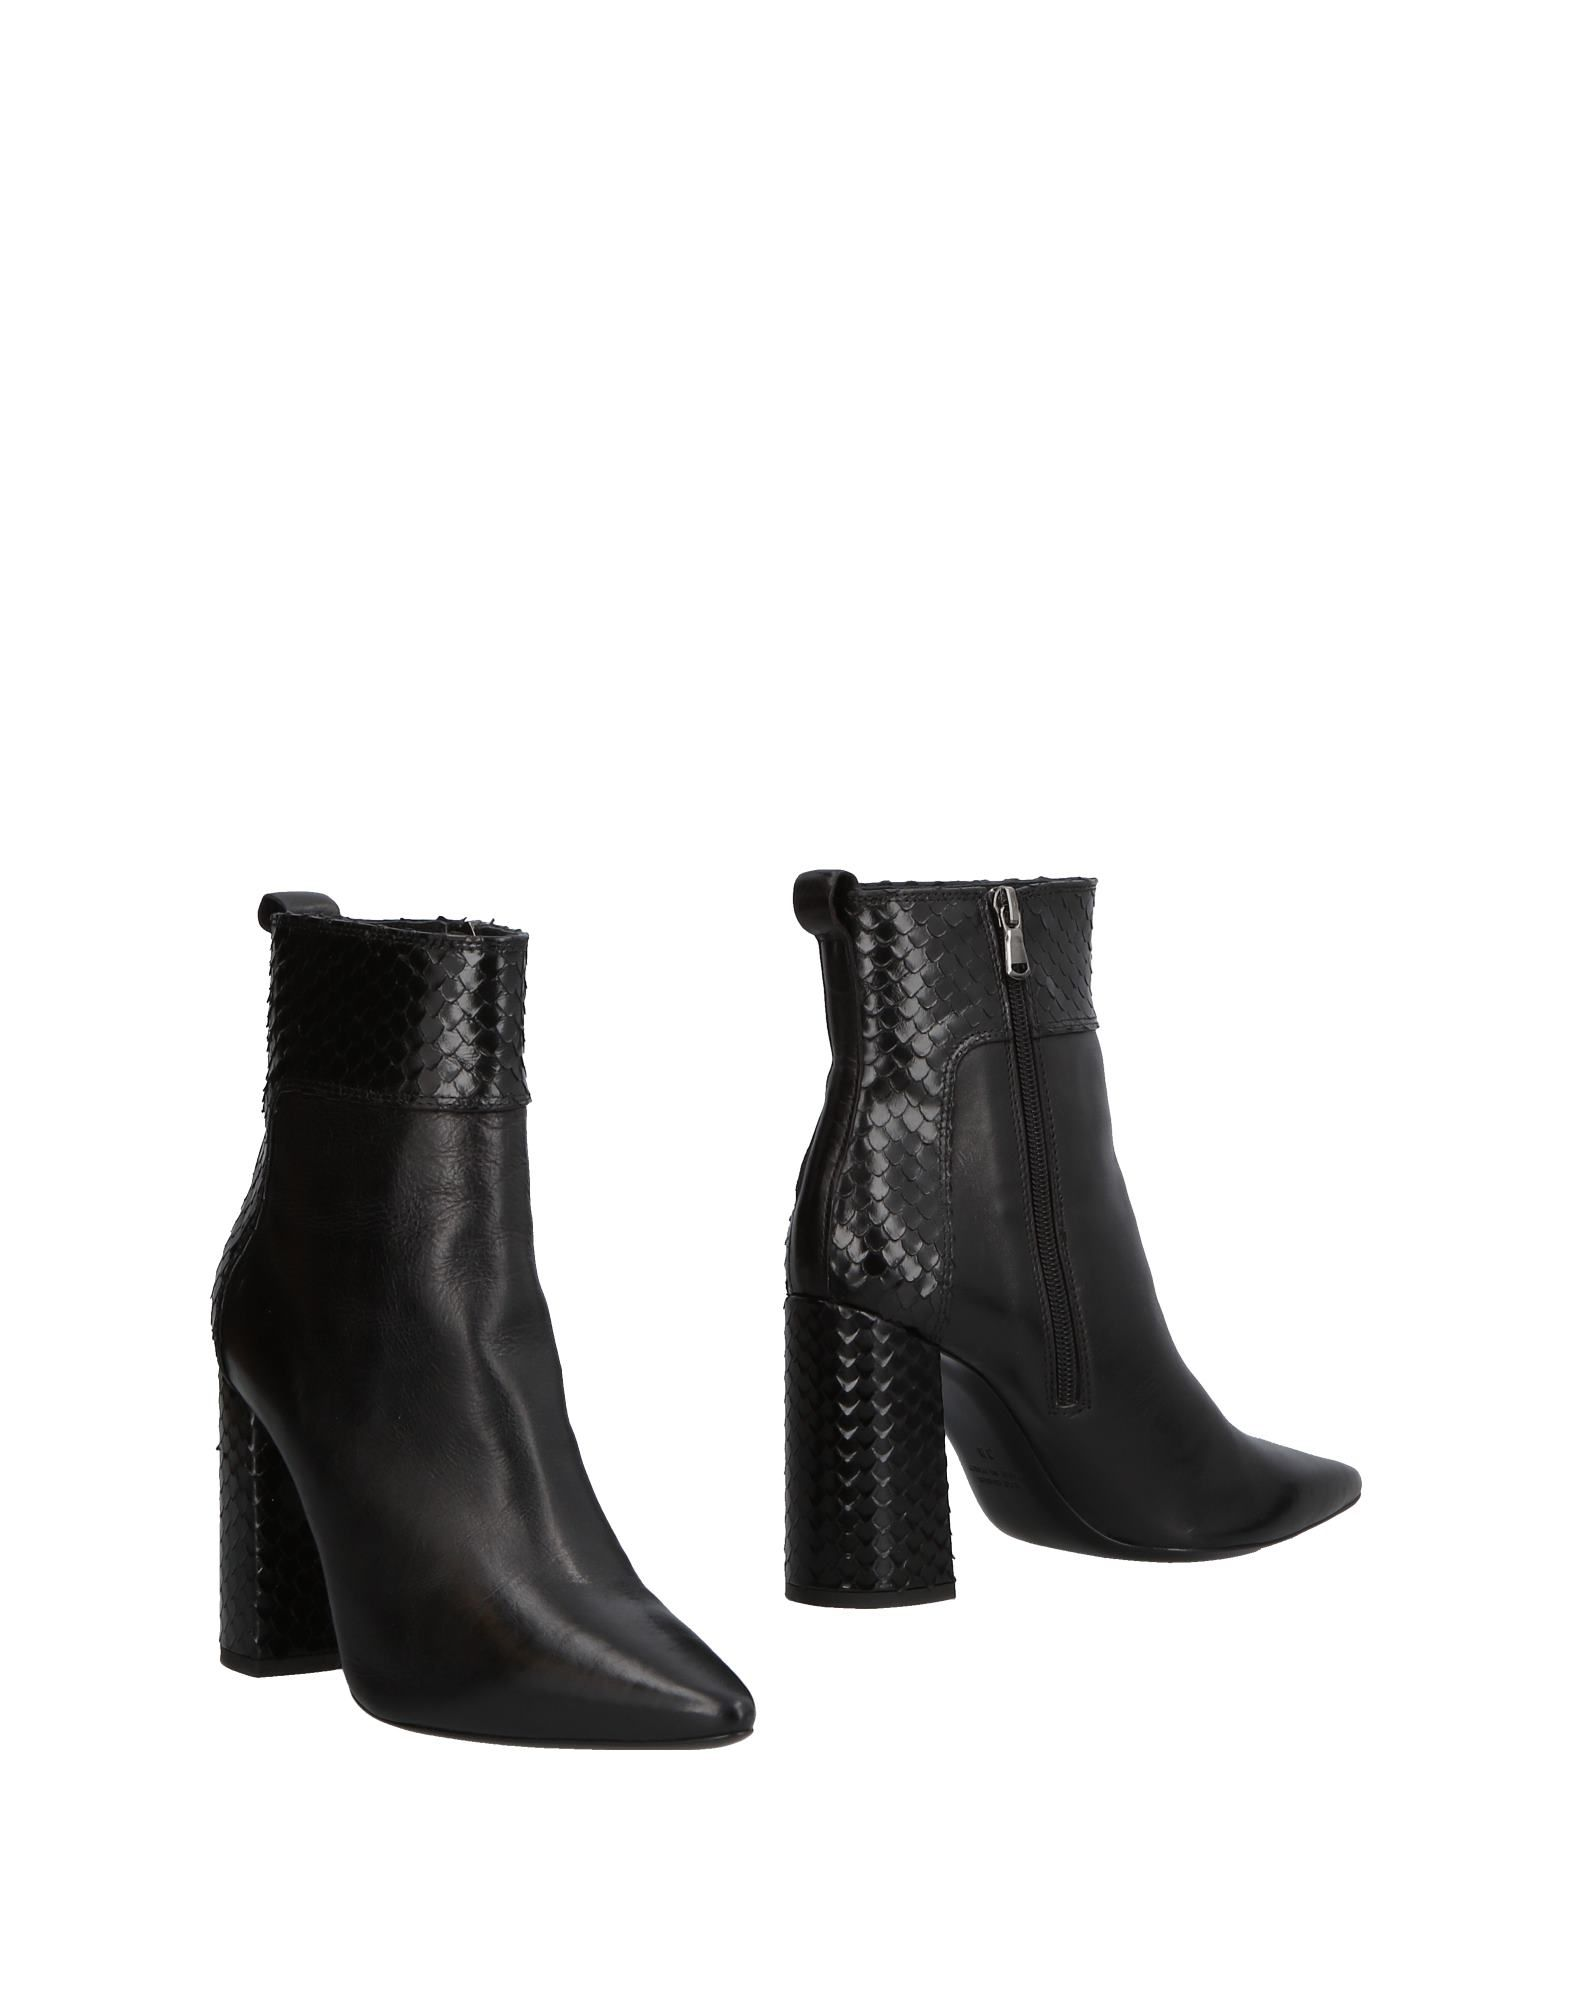 Bruschi Ankle Boot Boots - Women Bruschi Ankle Boots Boot online on  Australia - 11485034GS f7fdf3